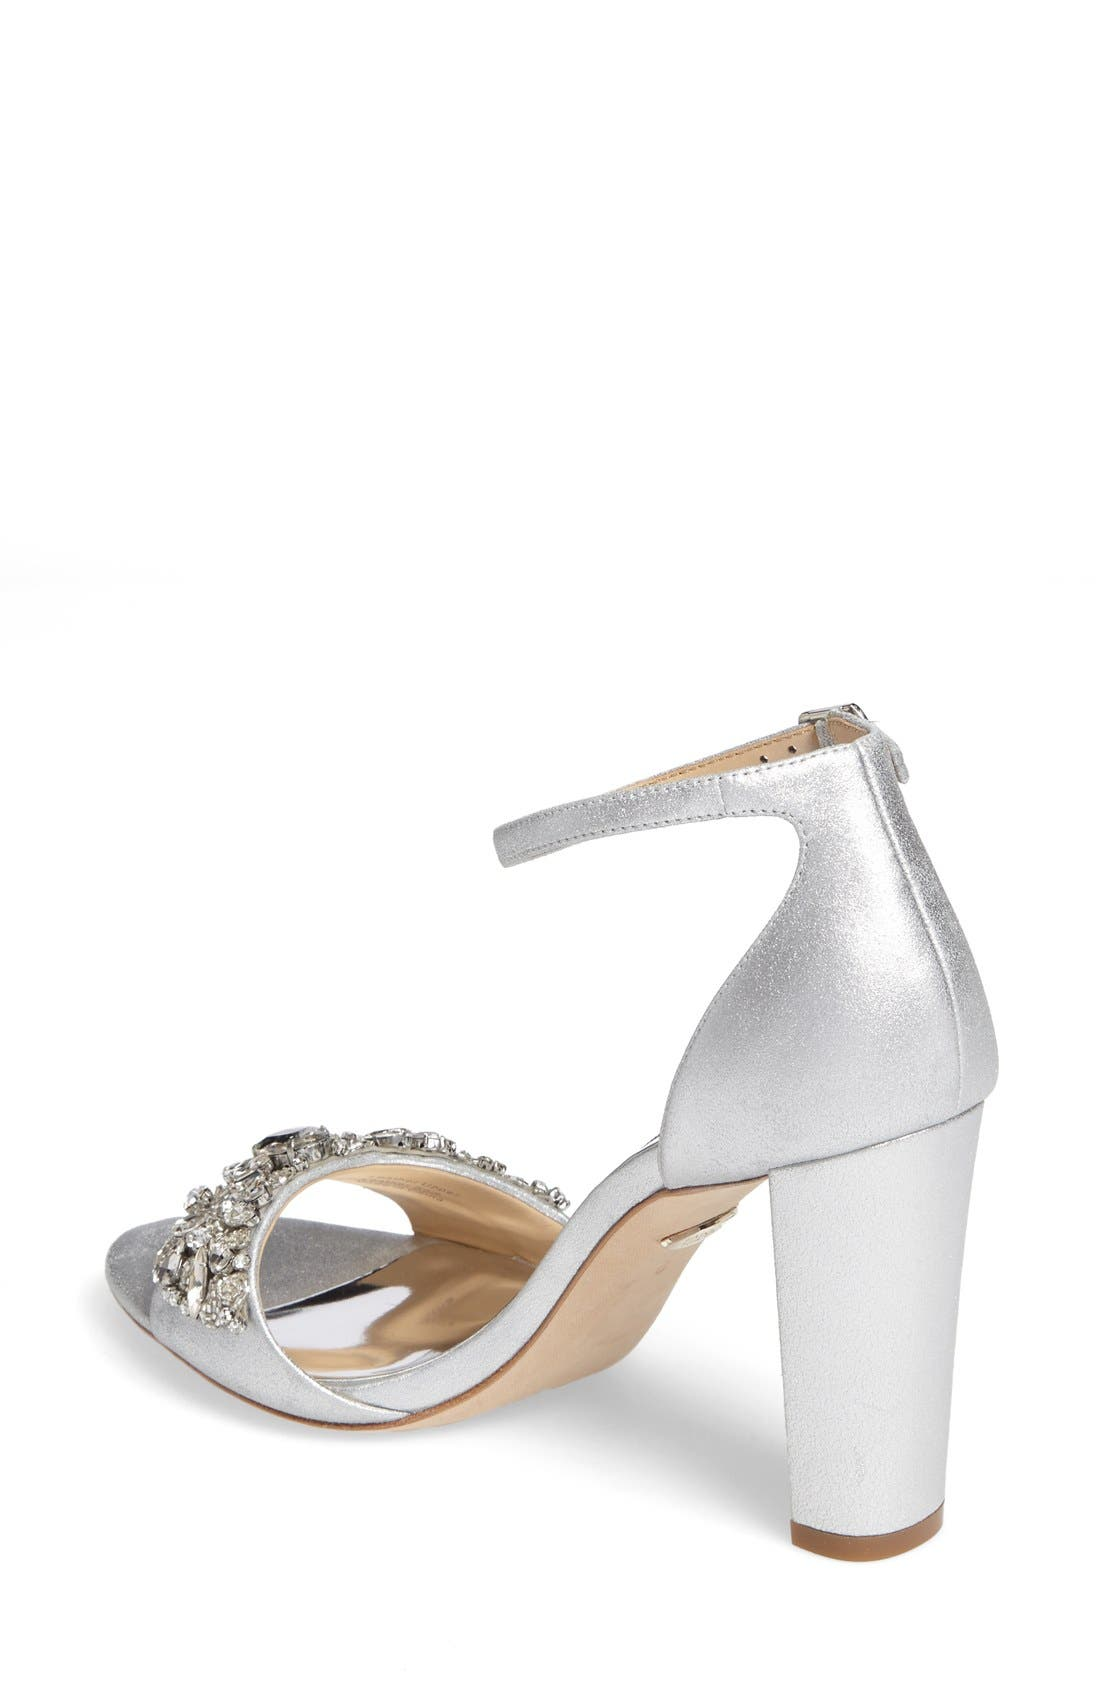 Alternate Image 2  - Badgley Mischka Barby Ankle Strap Sandal (Women)